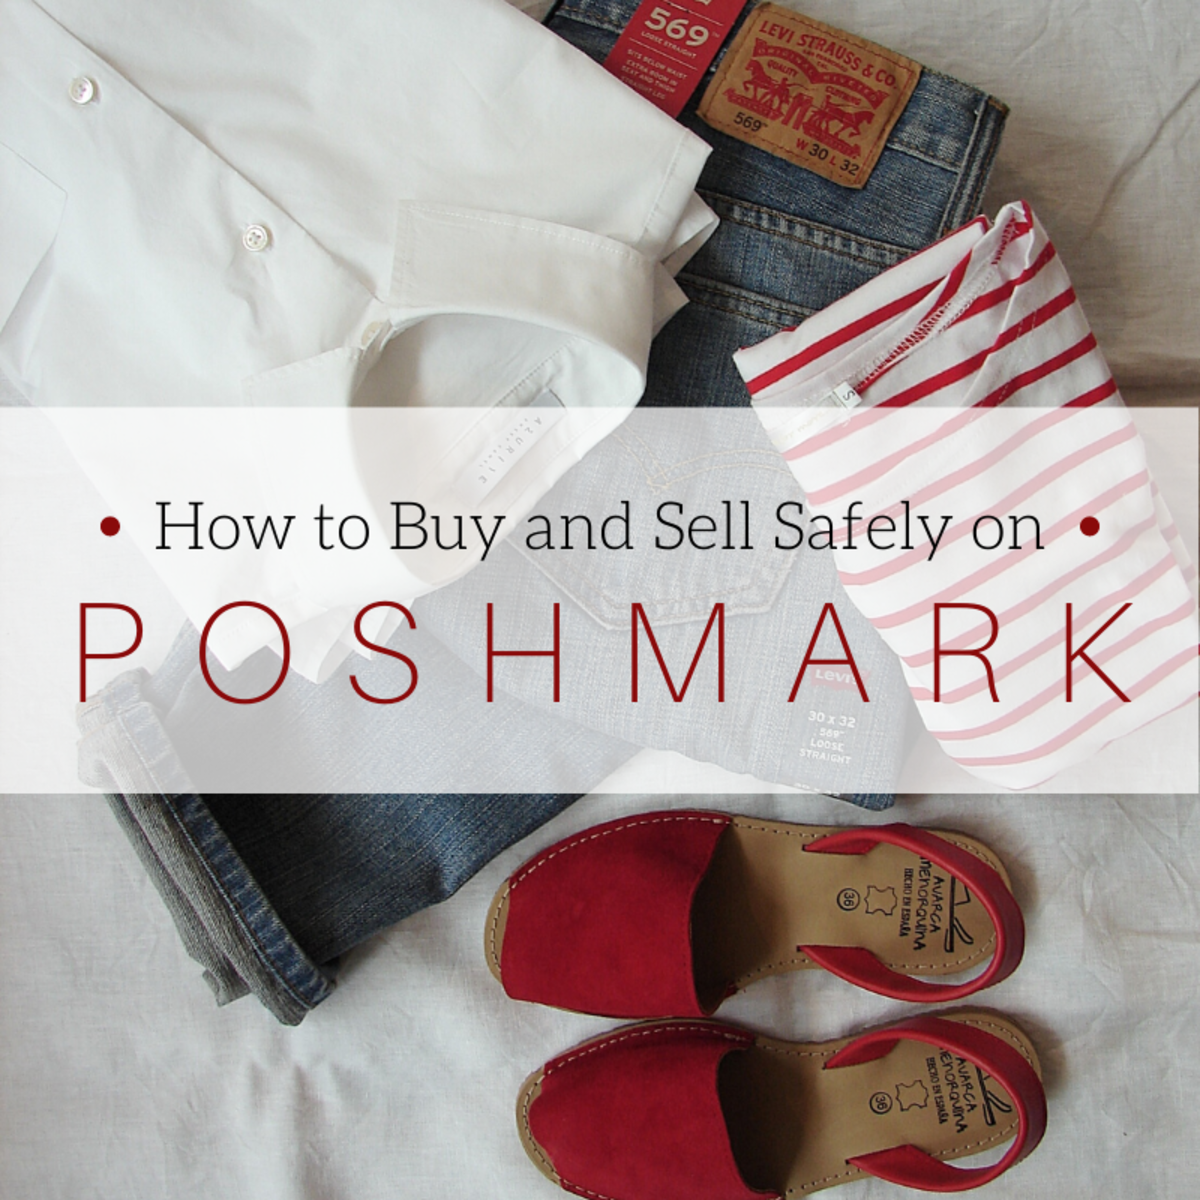 Is Poshmark Legit? How to Buy and Sell on Poshmark Safely